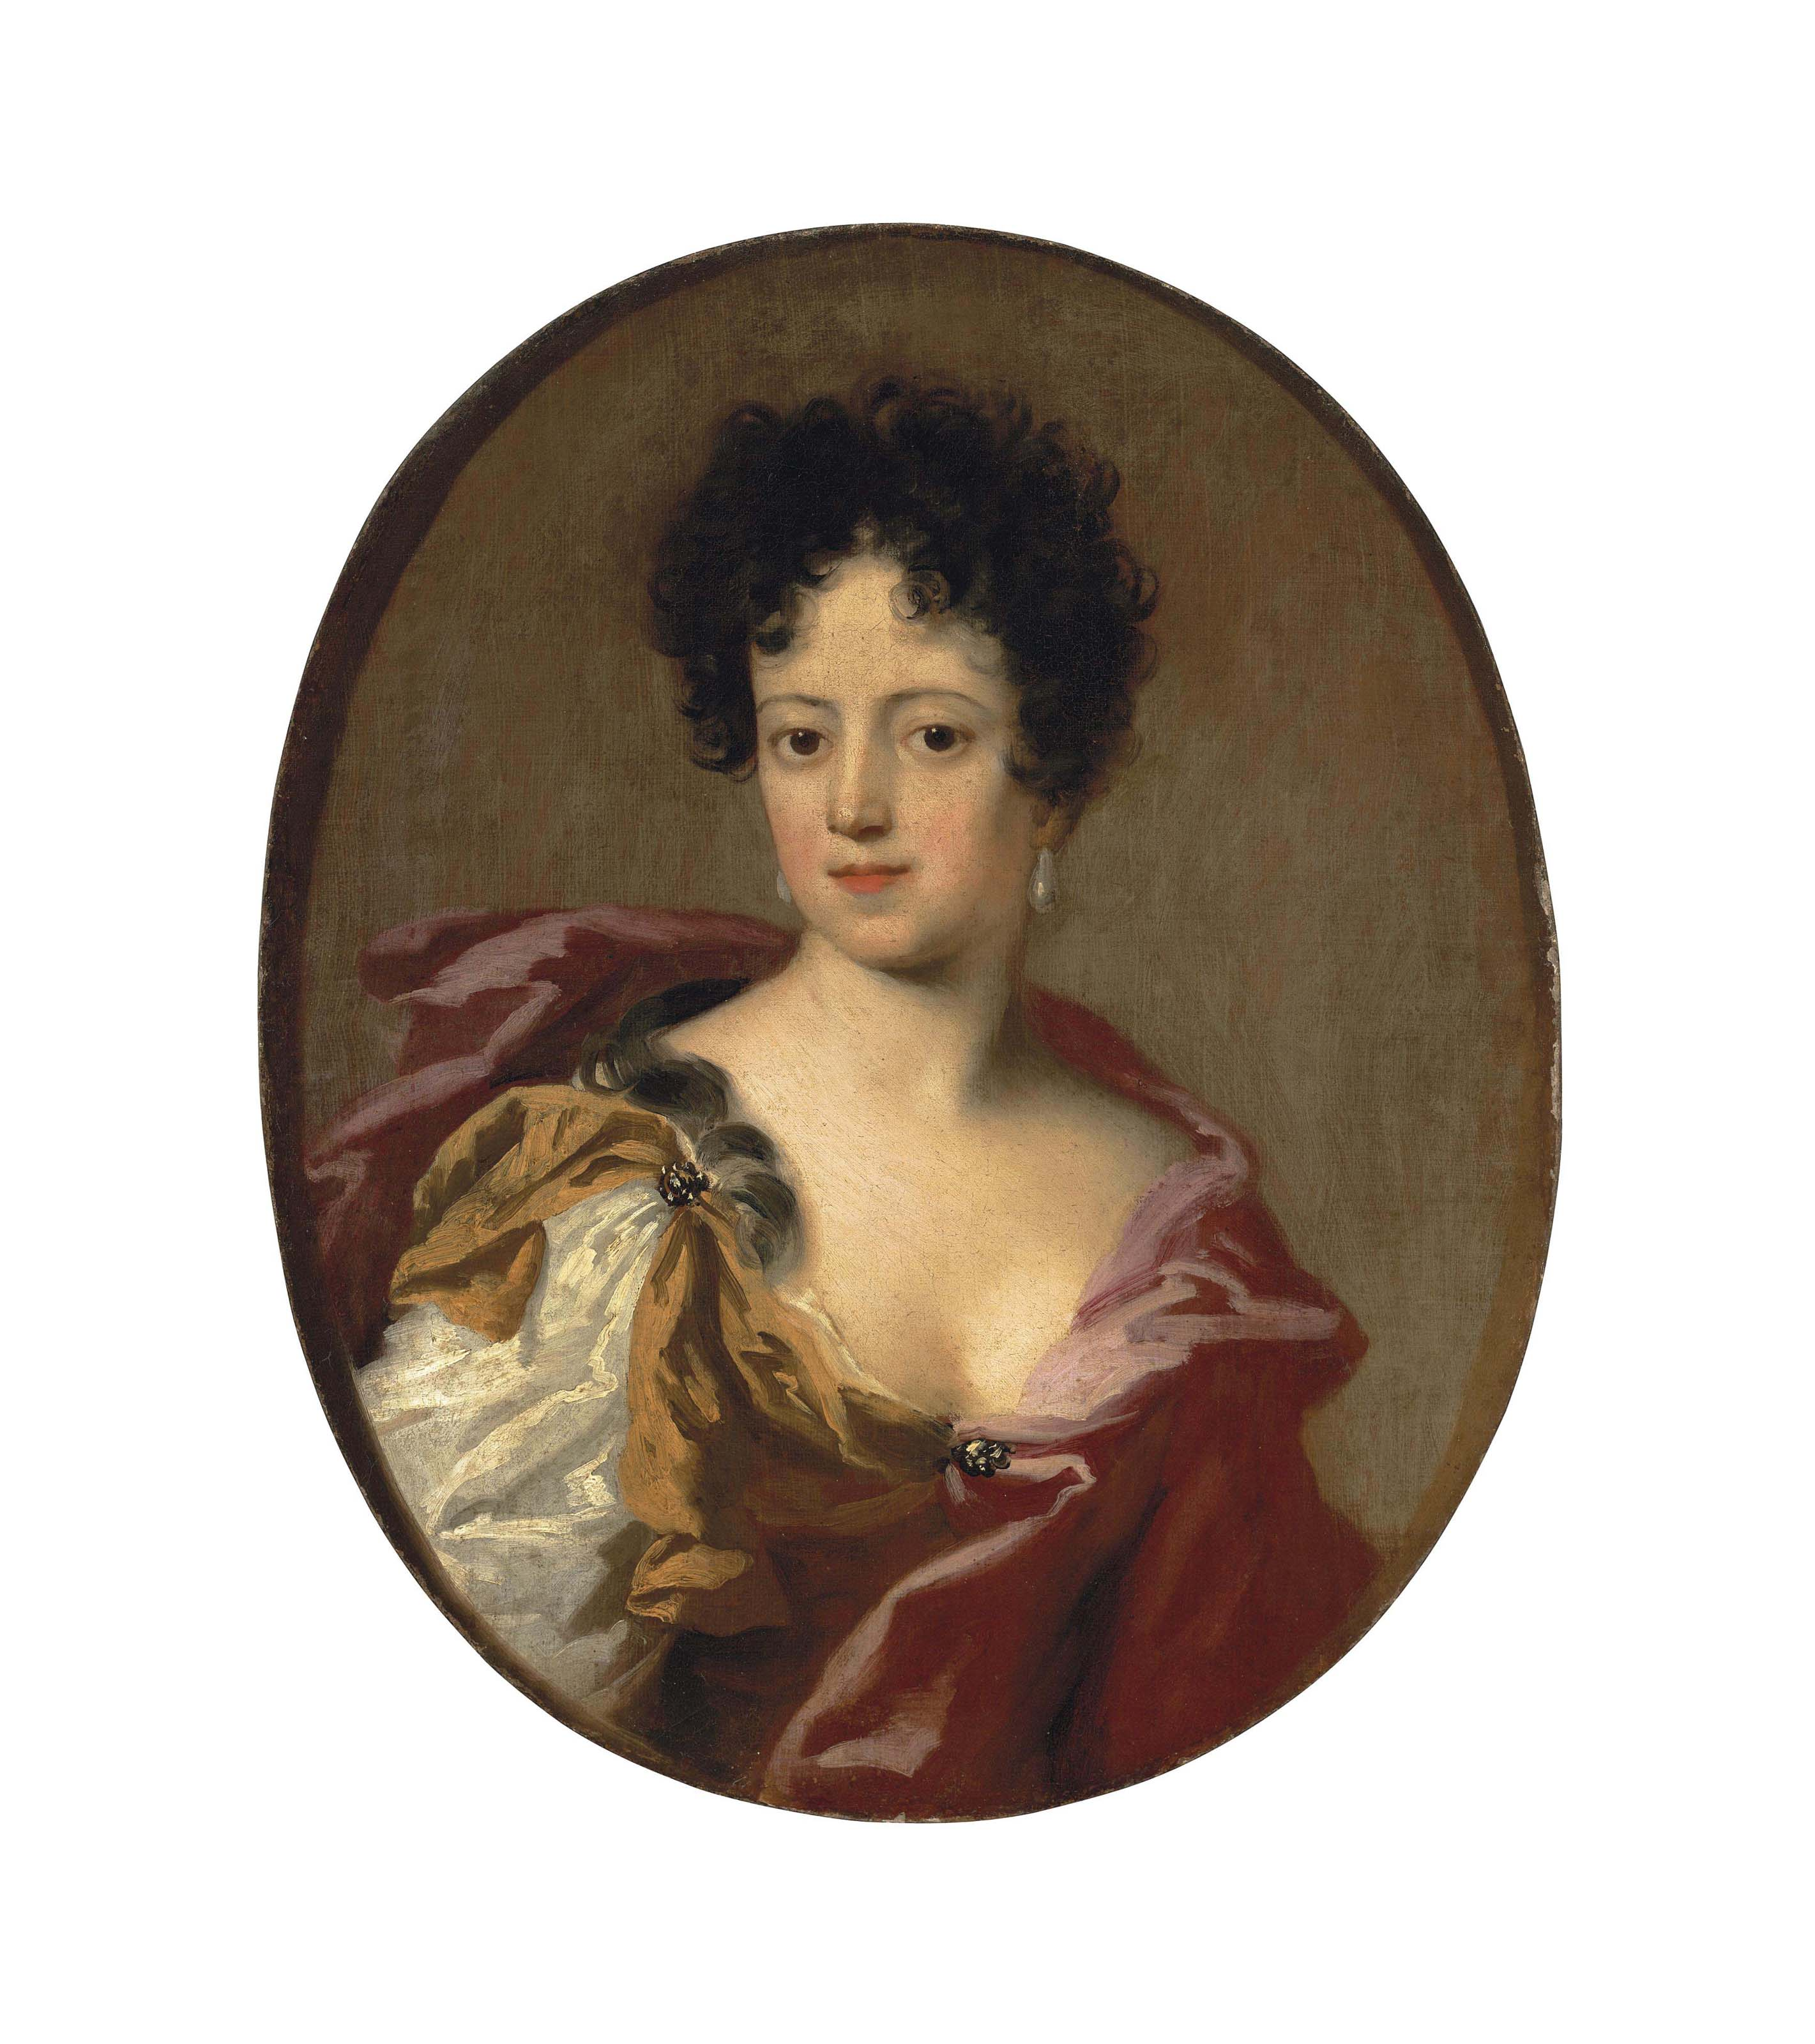 Portrait of a woman, half-length, in a yellow dress and red wrap, with pearl earrings